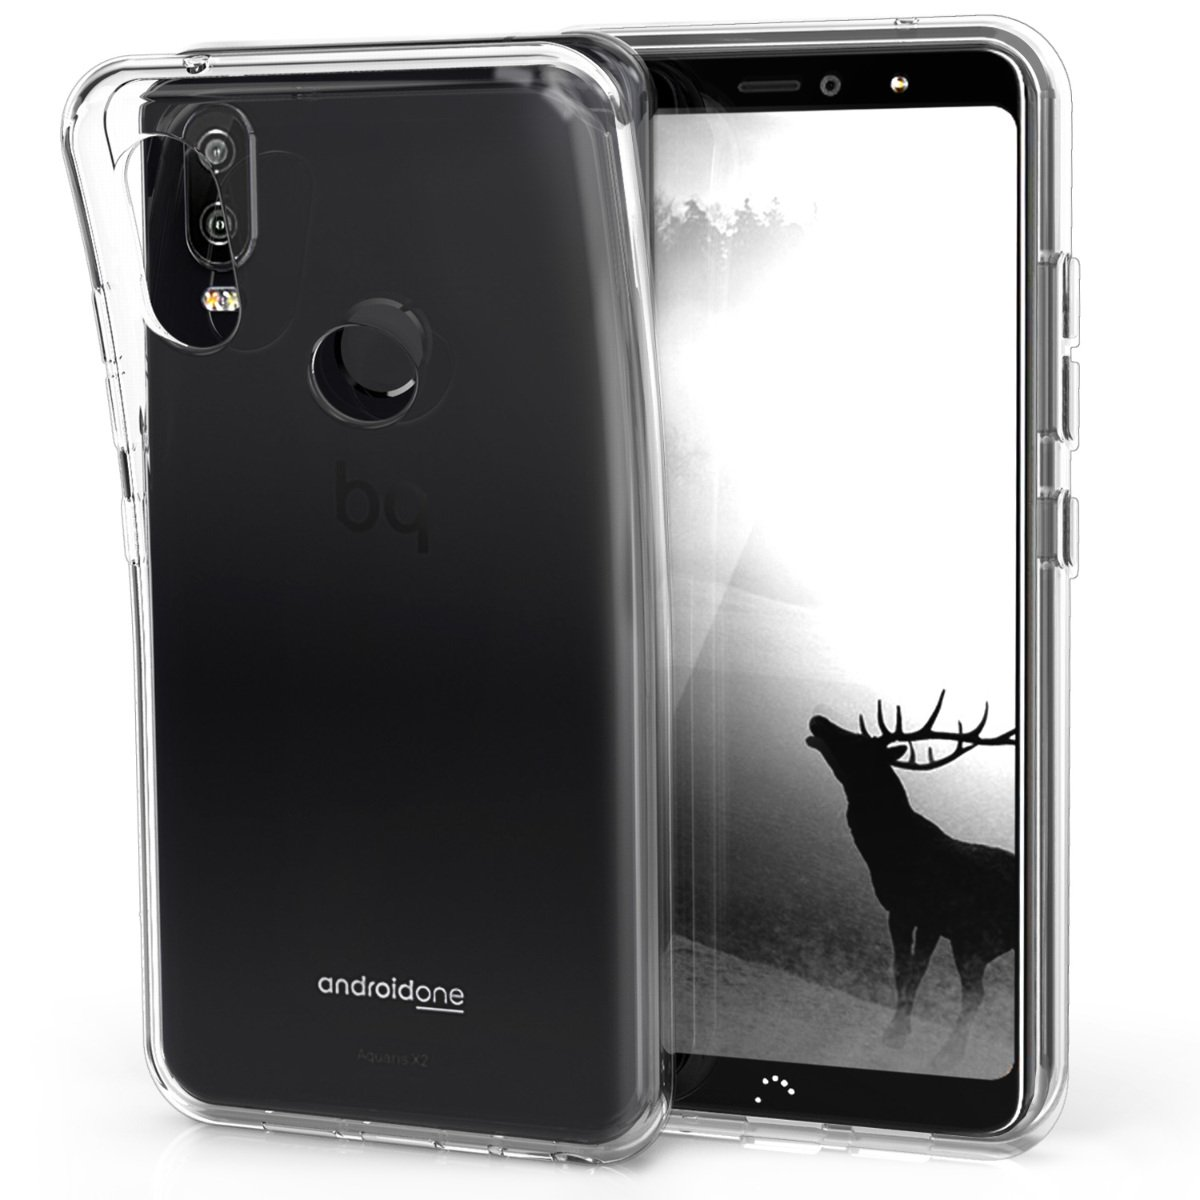 70837b38c08 Amazon.com: kwmobile Crystal Case for bq Aquaris X2 / X2 Pro - Soft  Flexible TPU Silicone Protective Cover - Transparent: Cell Phones &  Accessories